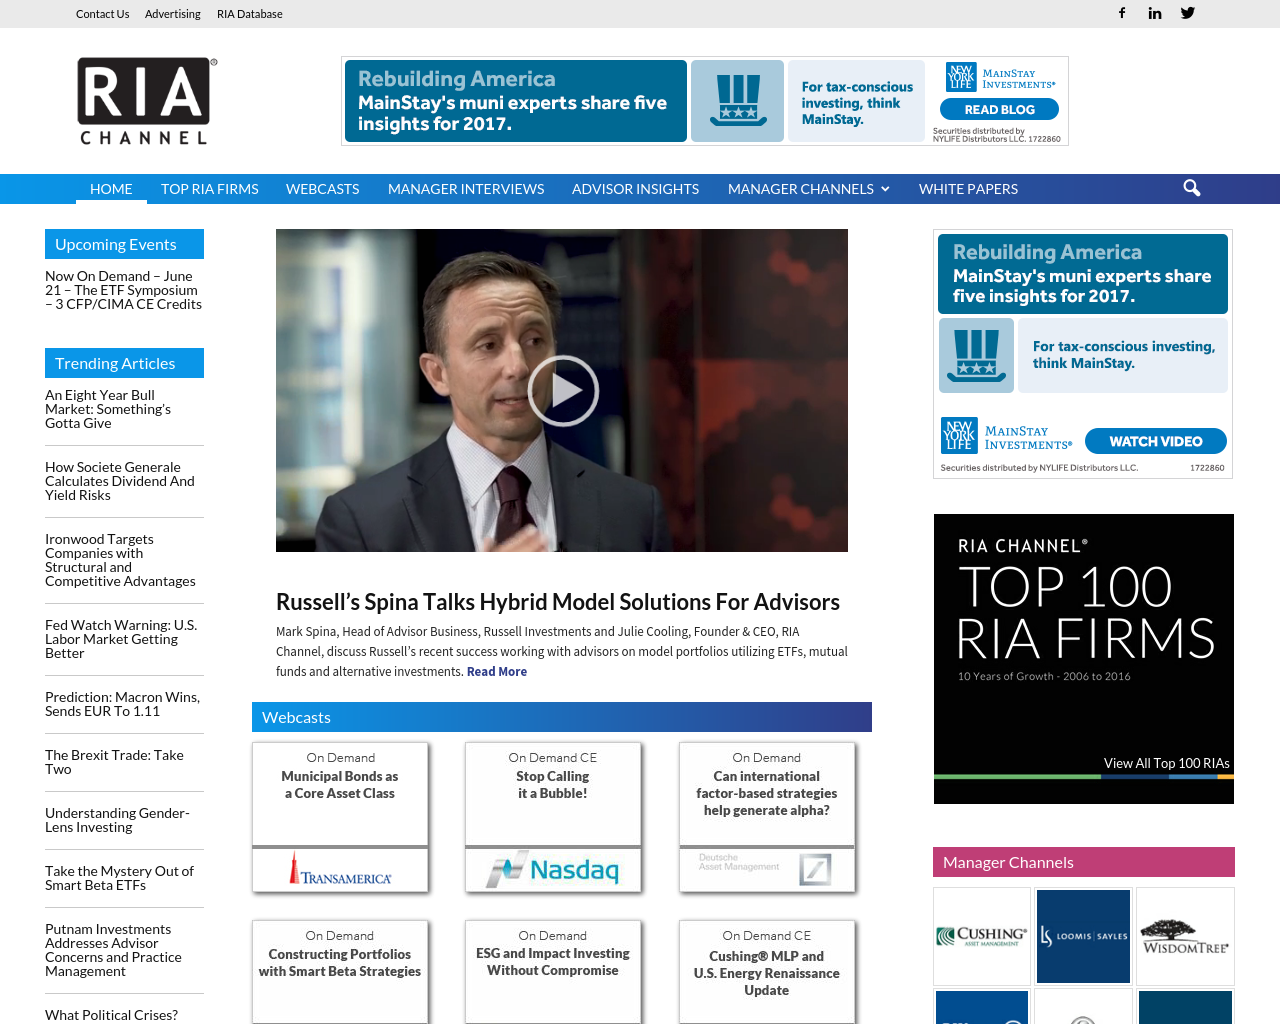 Ria-Channel-Advertising-Reviews-Pricing